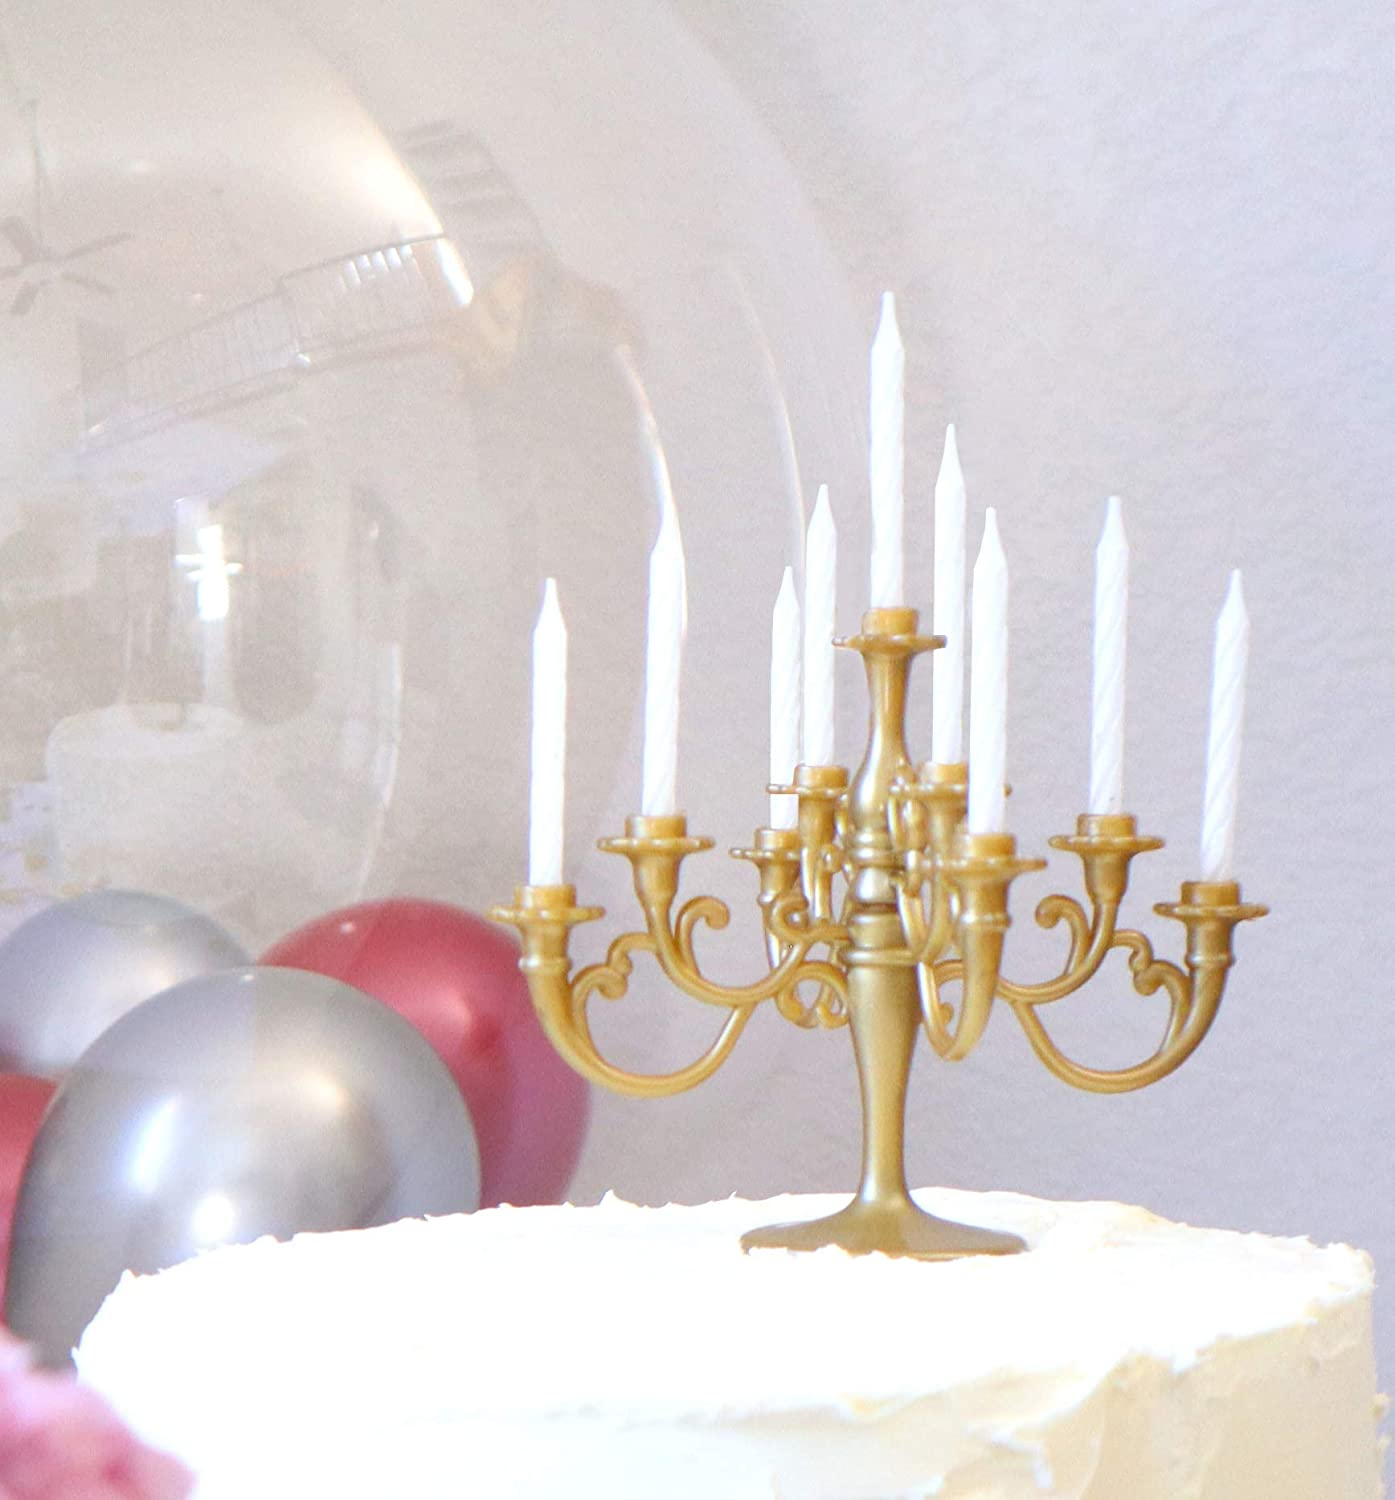 Amazon Com Luxury Candelabra Birthday Candles Special Cake Candles Party And Event Unique Candle Cake Topper With 9 Candles Cake Candle Holders Cake Decorations Romantic Propose Candles Vintage Gold Home Improvement